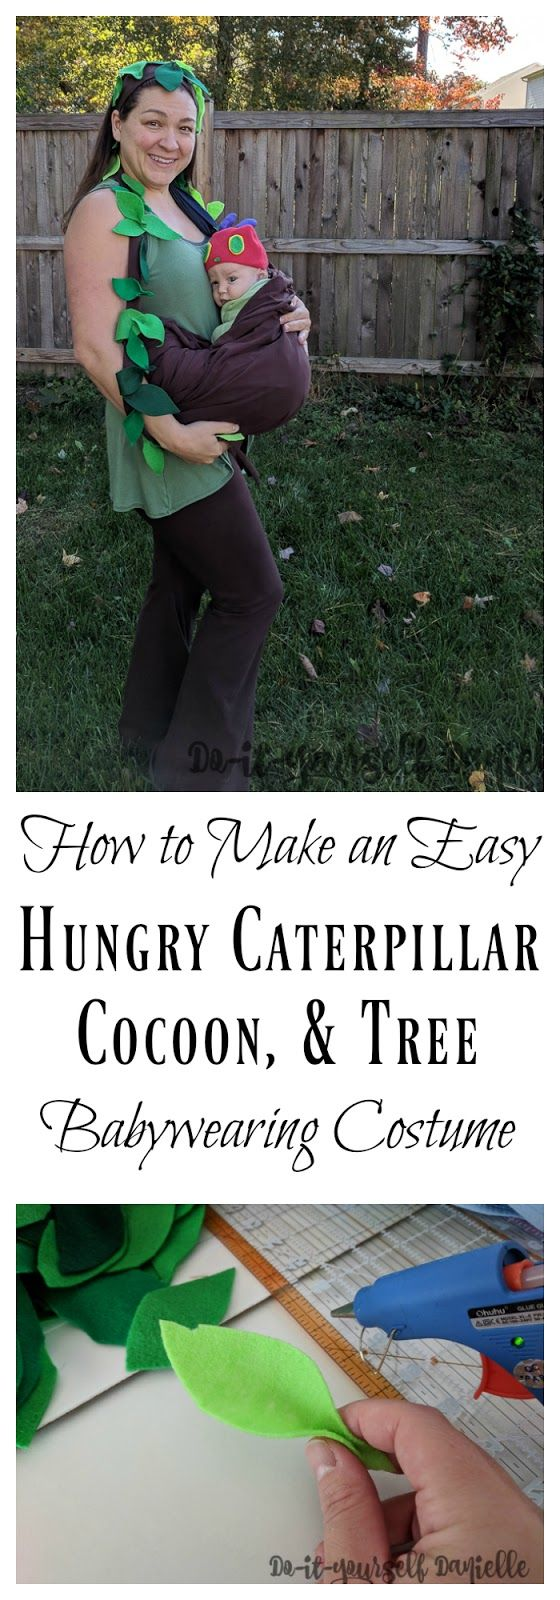 Easy DIY Halloween Ring Sling costume: Hungry Caterpillar in a cocoon on a tree.